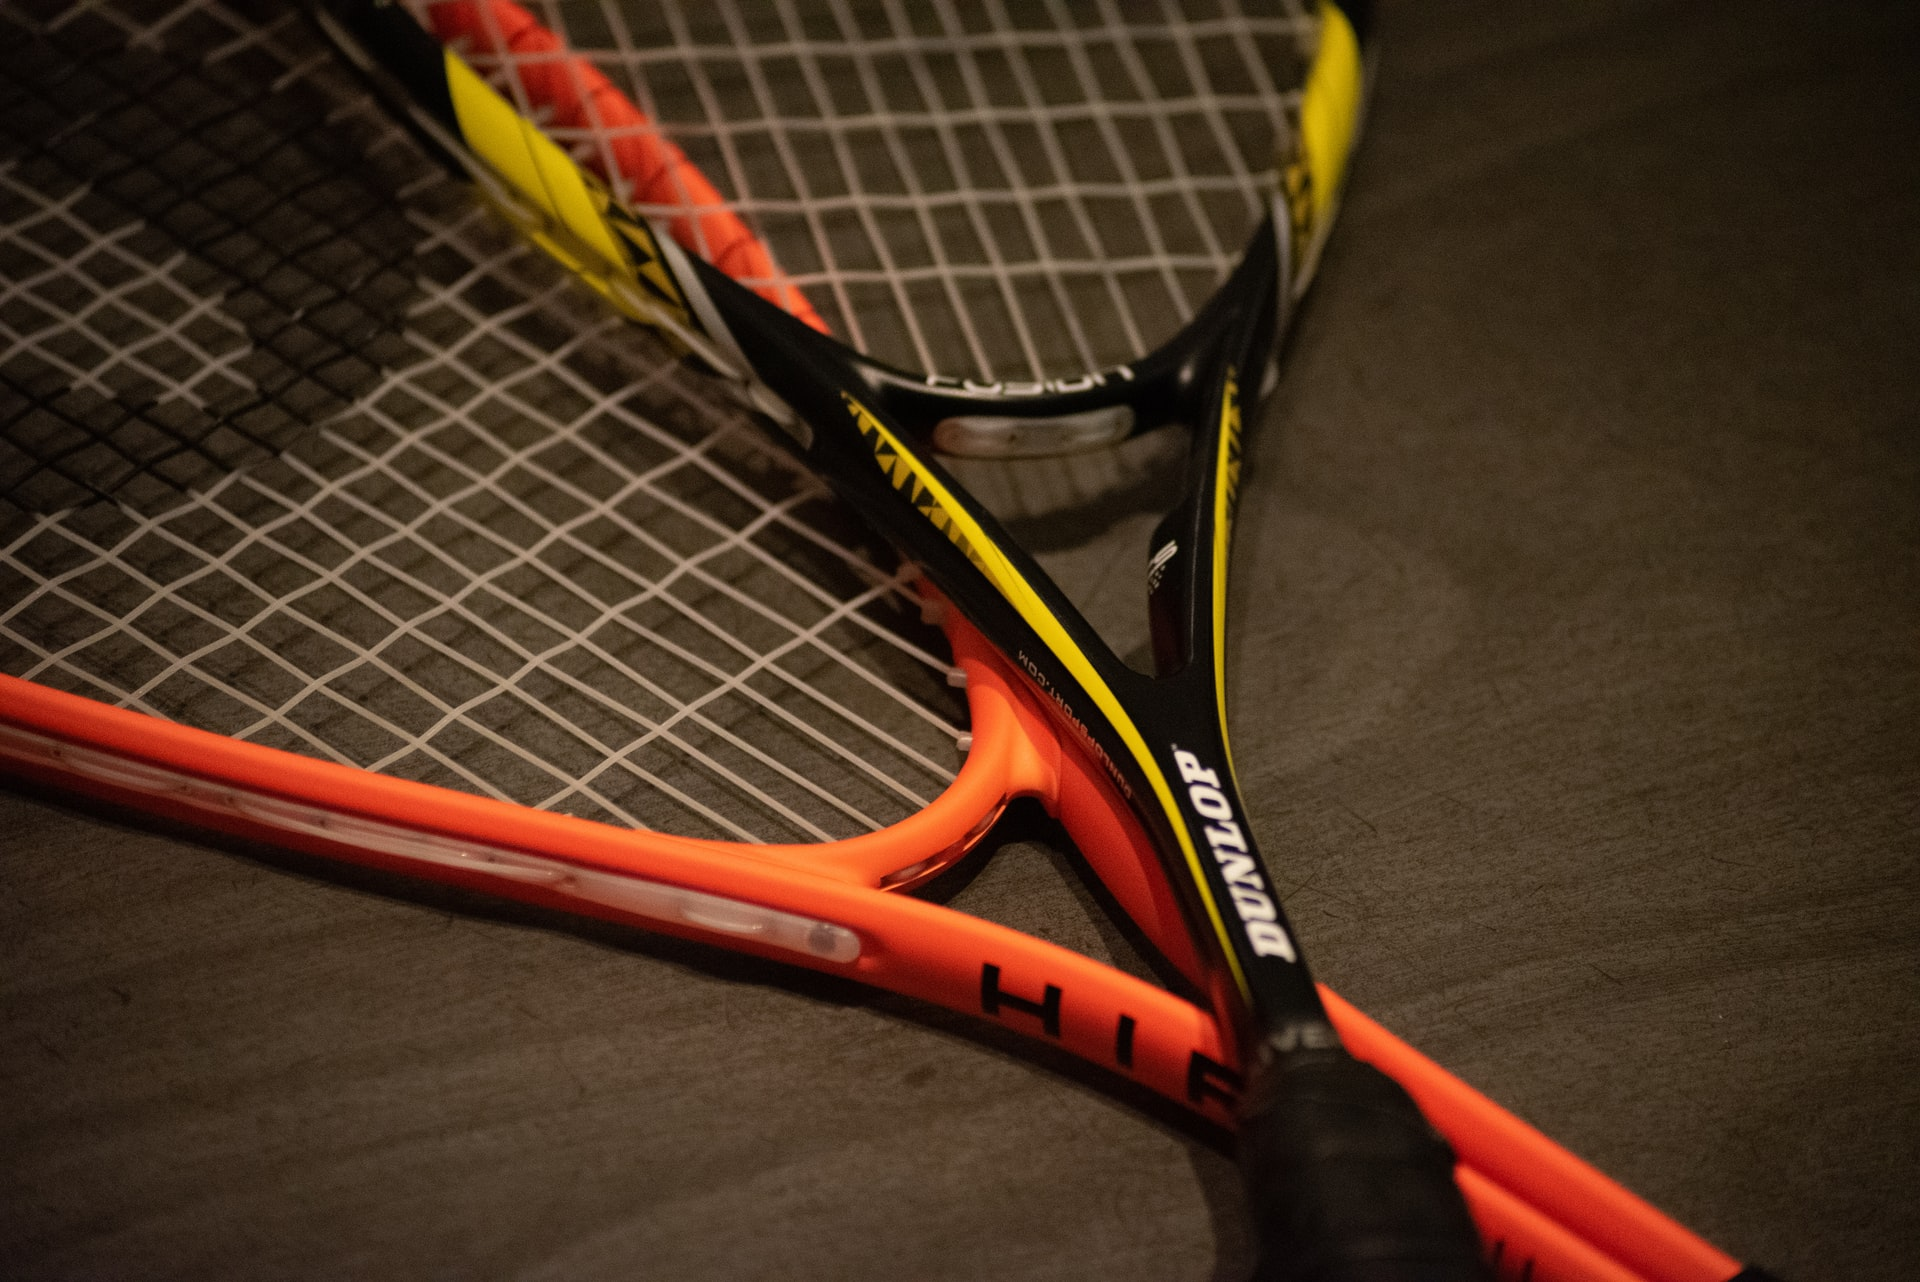 How to tell if your strings are dead and when to restring your racket